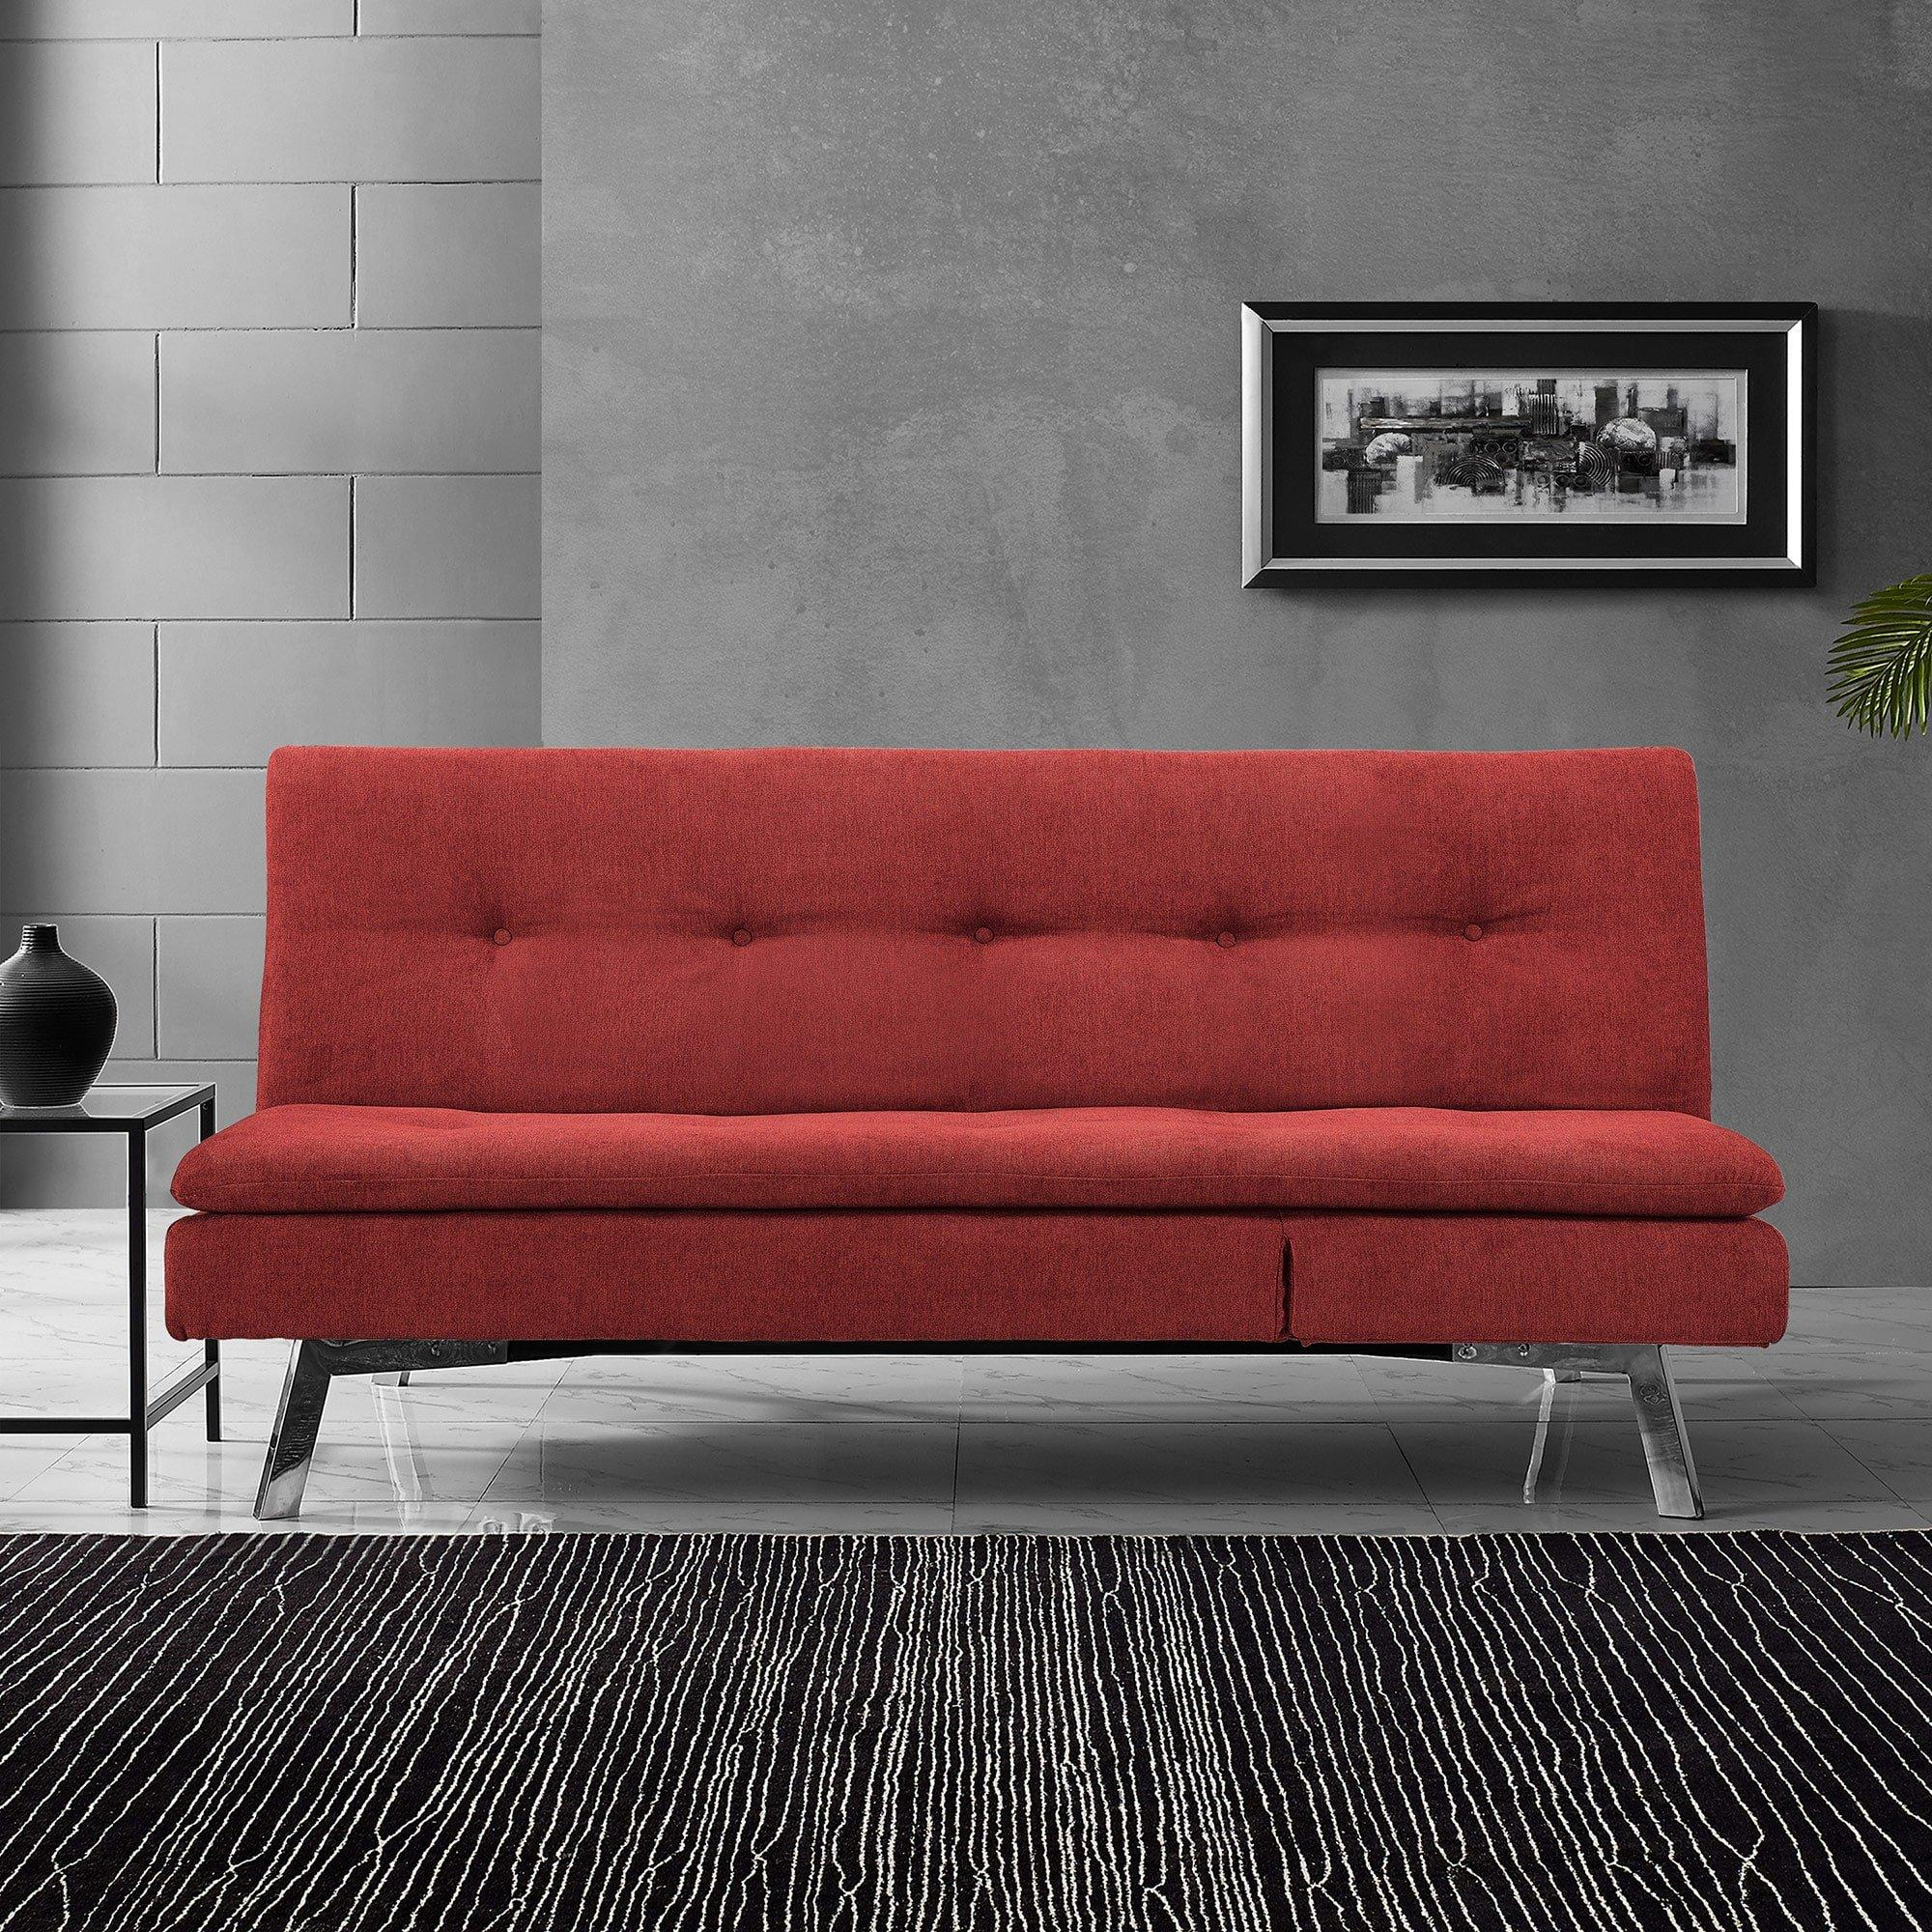 Rent To Own Sealy Sofa Convertibles Chicago Cozy Crimson Convertible Sofa With Chaise At Aaron S Today